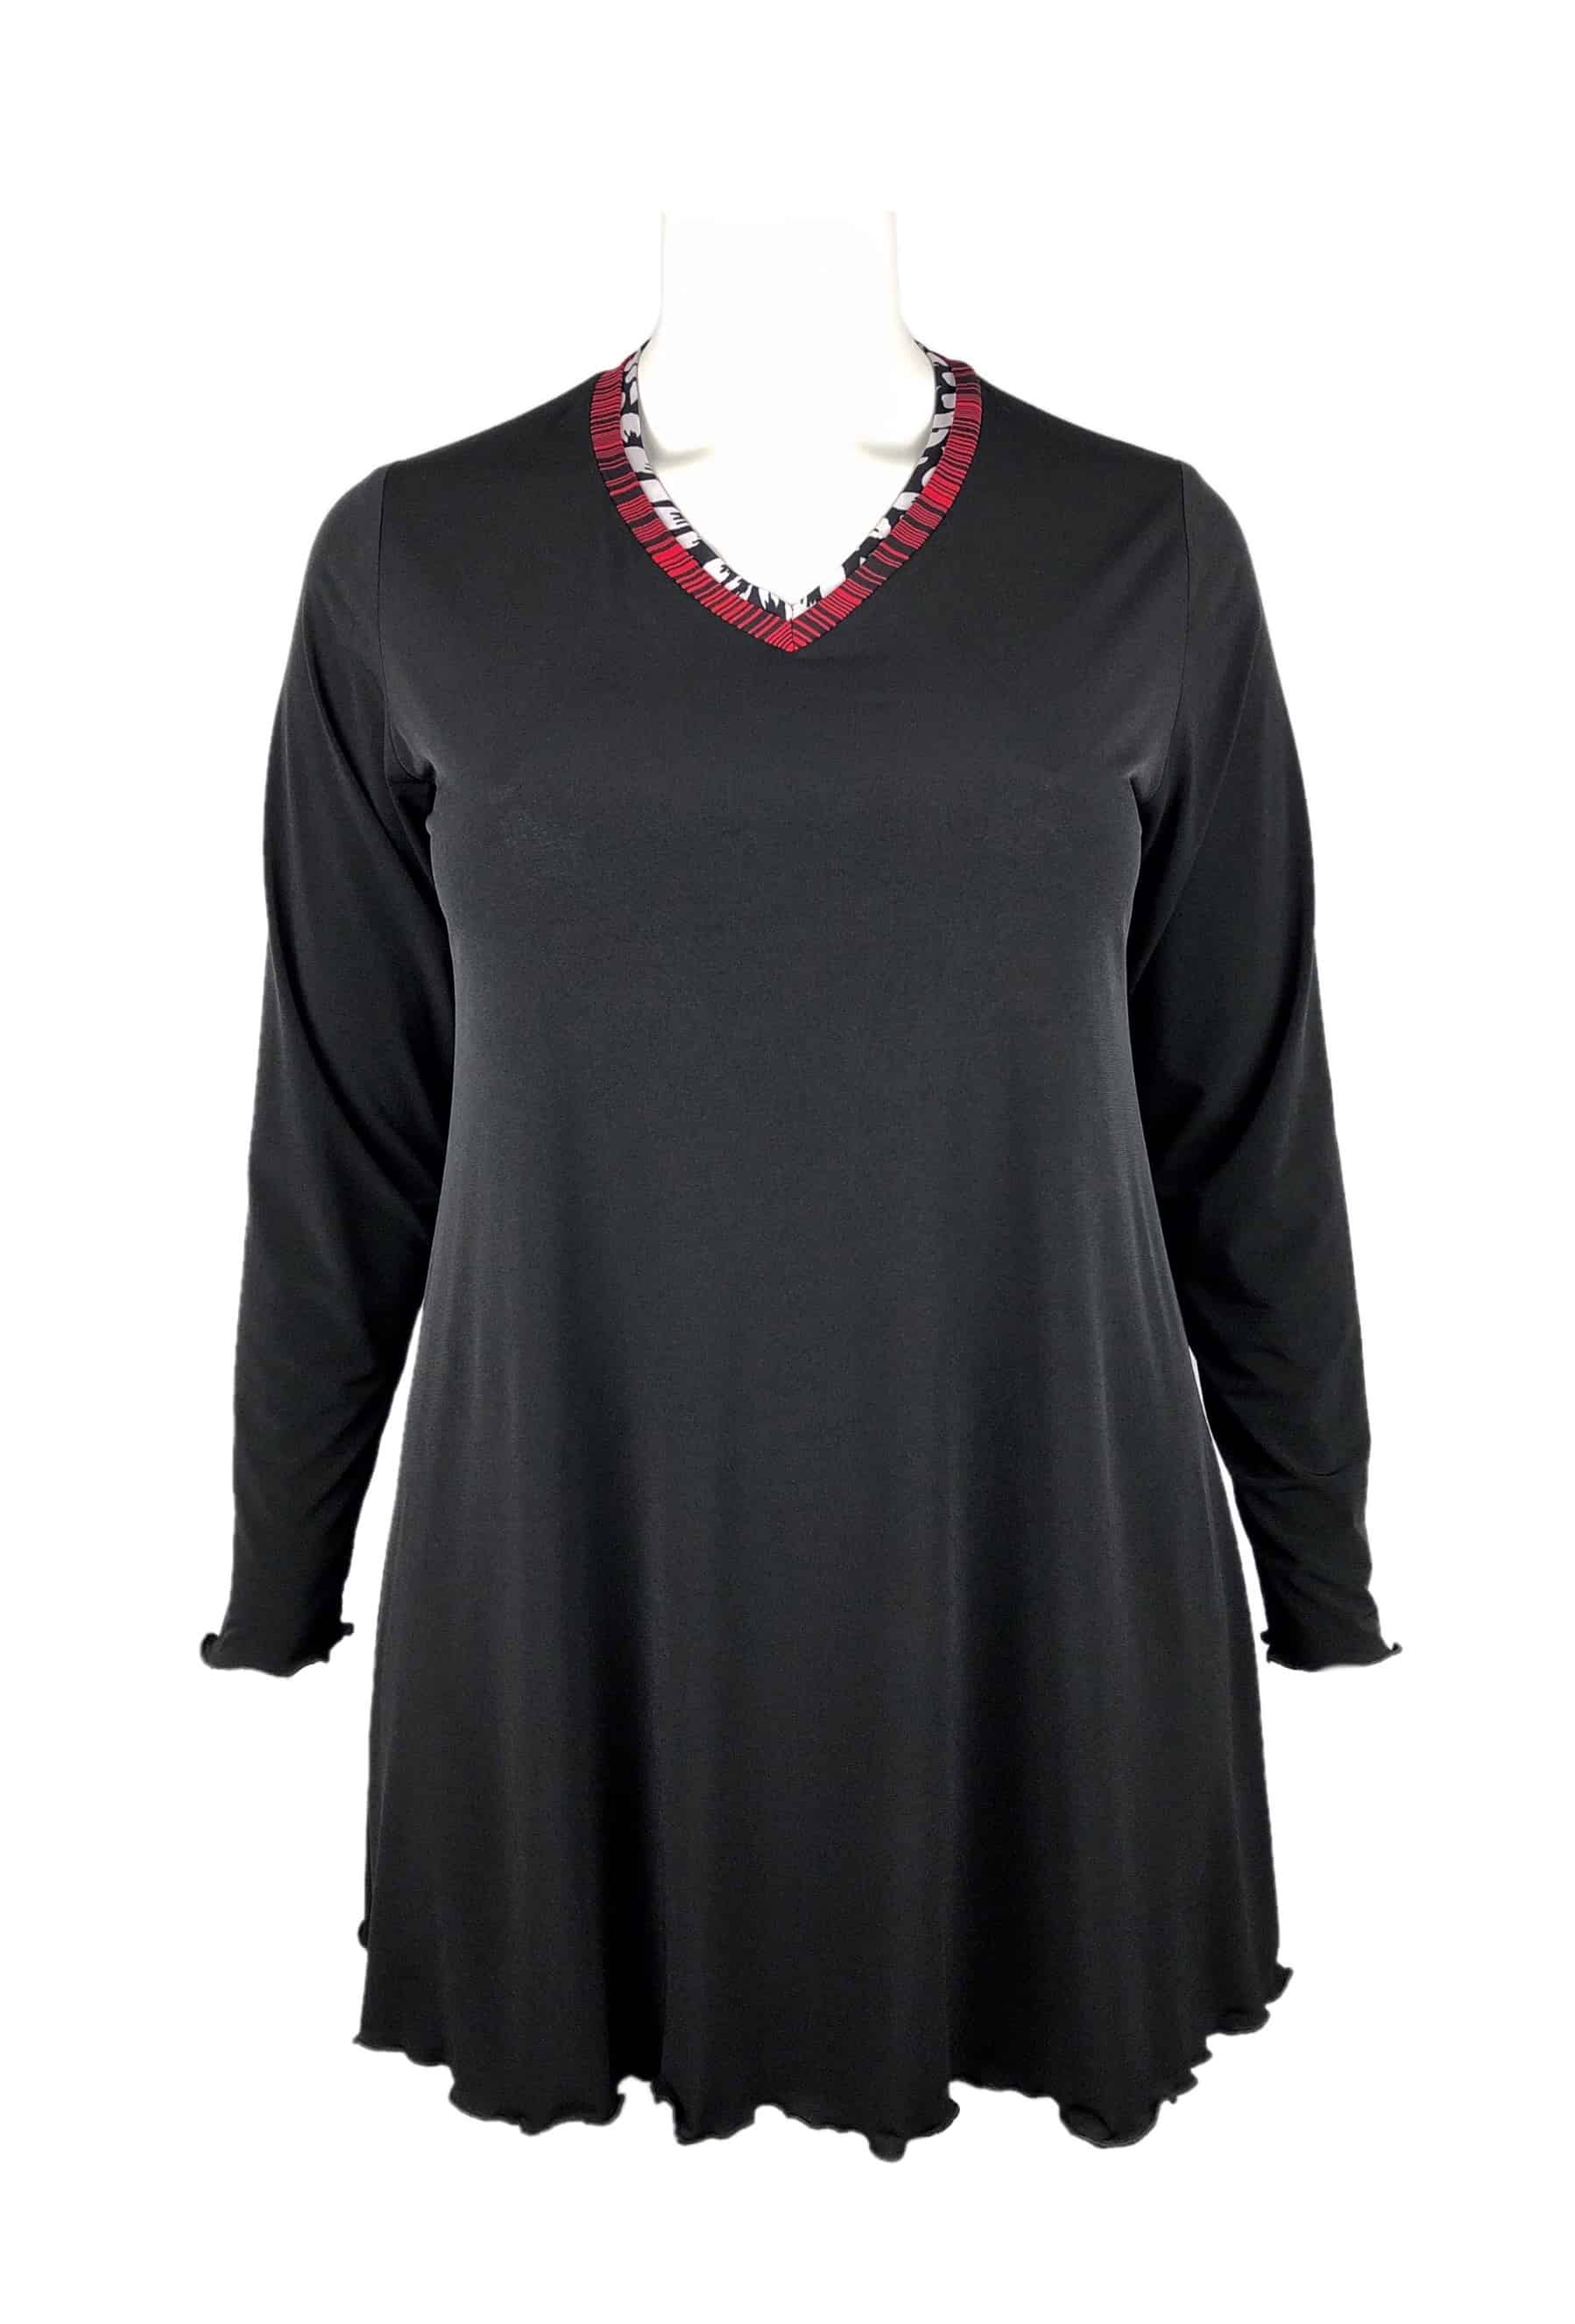 Miracle Top Double V-Neck Black & Red Stripe